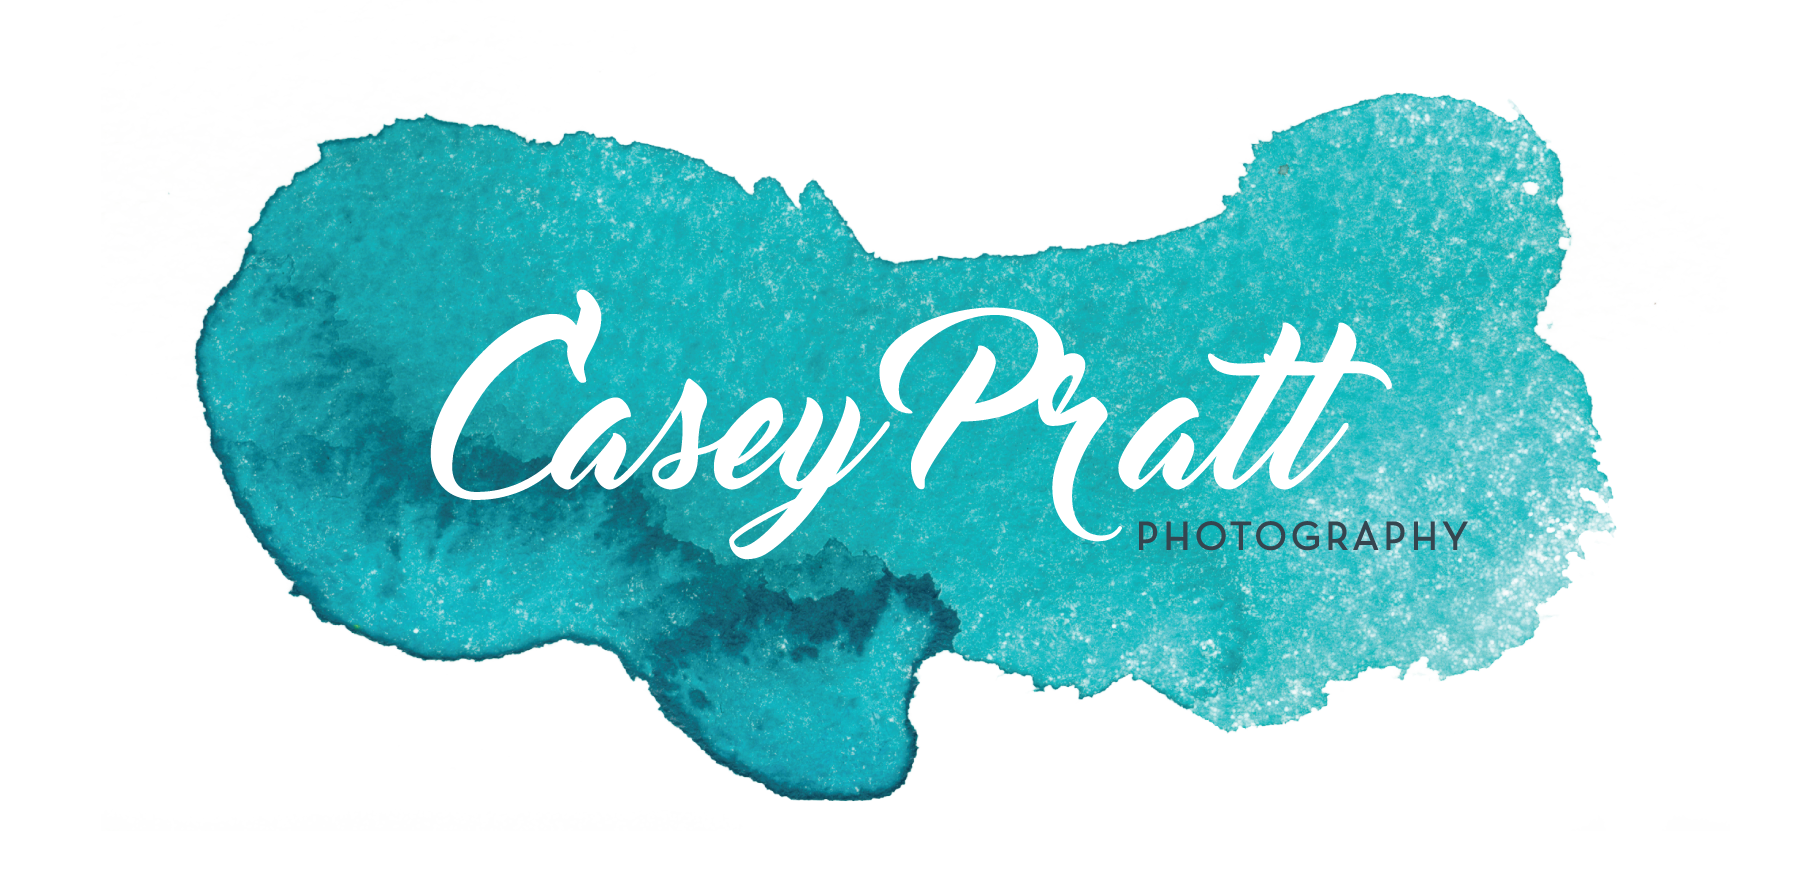 Casey Pratt Photography